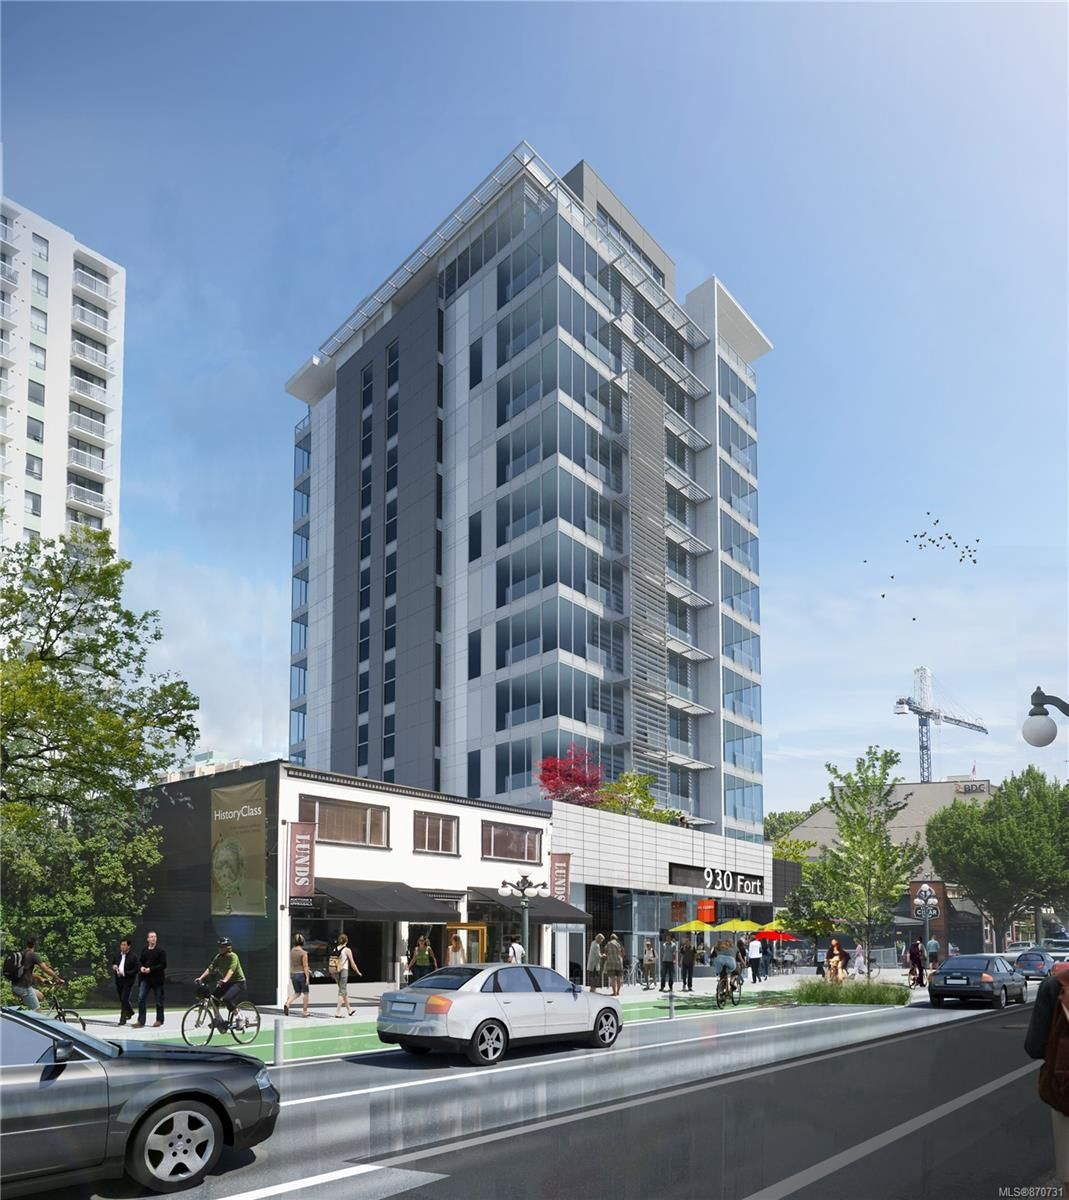 Main Photo: 930 Fort St in : Vi Downtown Unimproved Land for sale (Victoria)  : MLS®# 870731